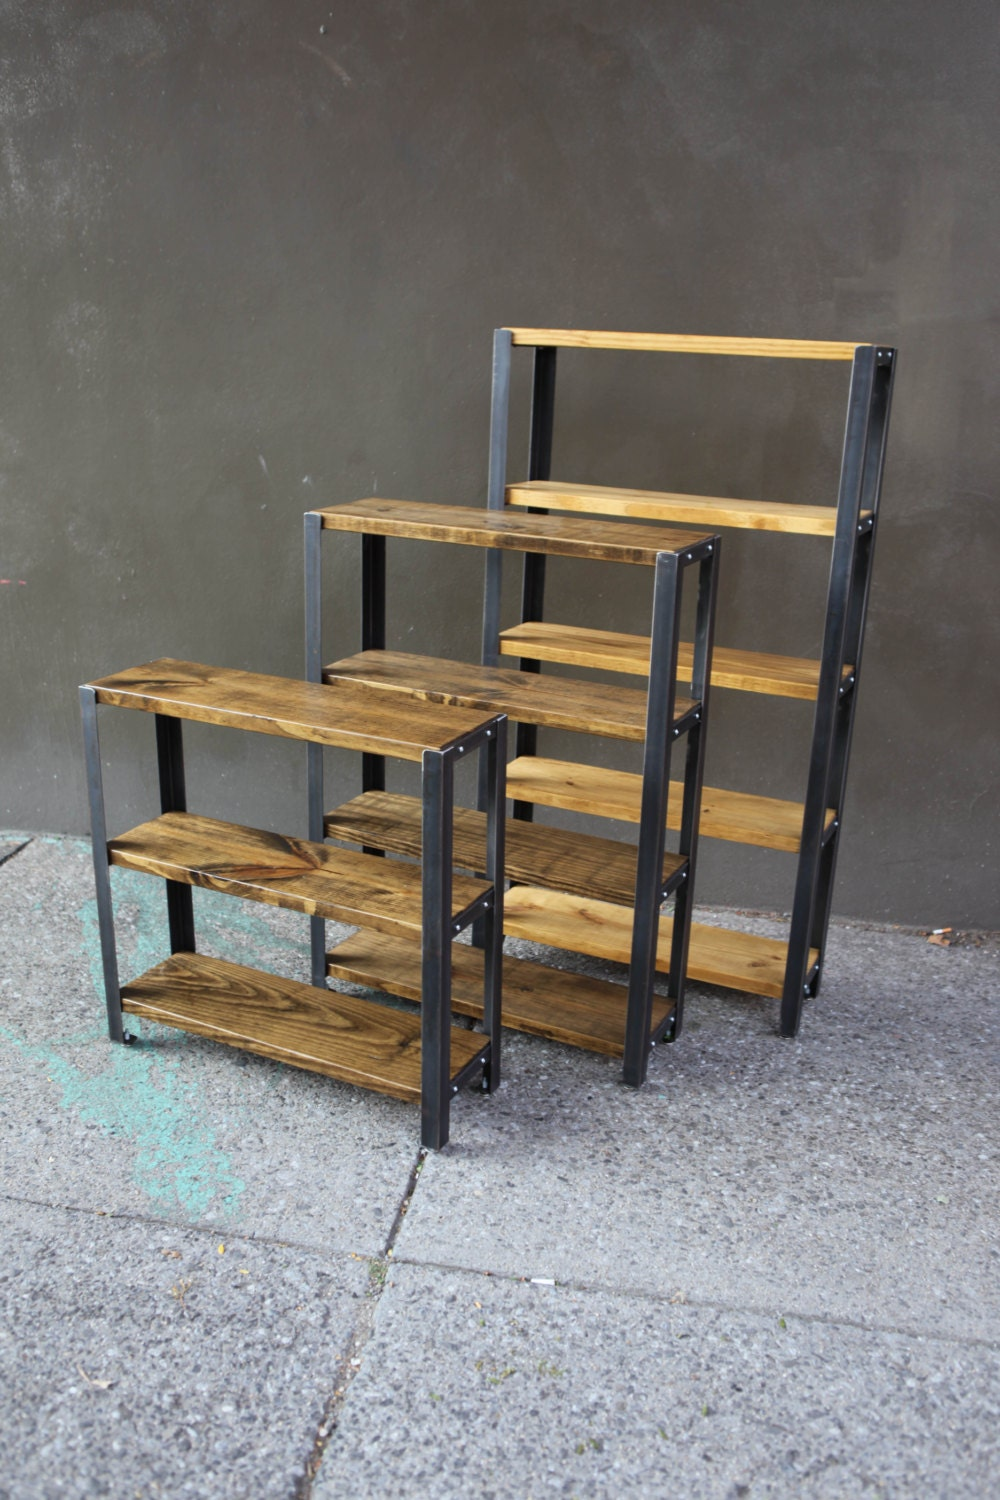 Reclaimed Wood Bookcase // Reclaimed Wood Shelves // Shelves